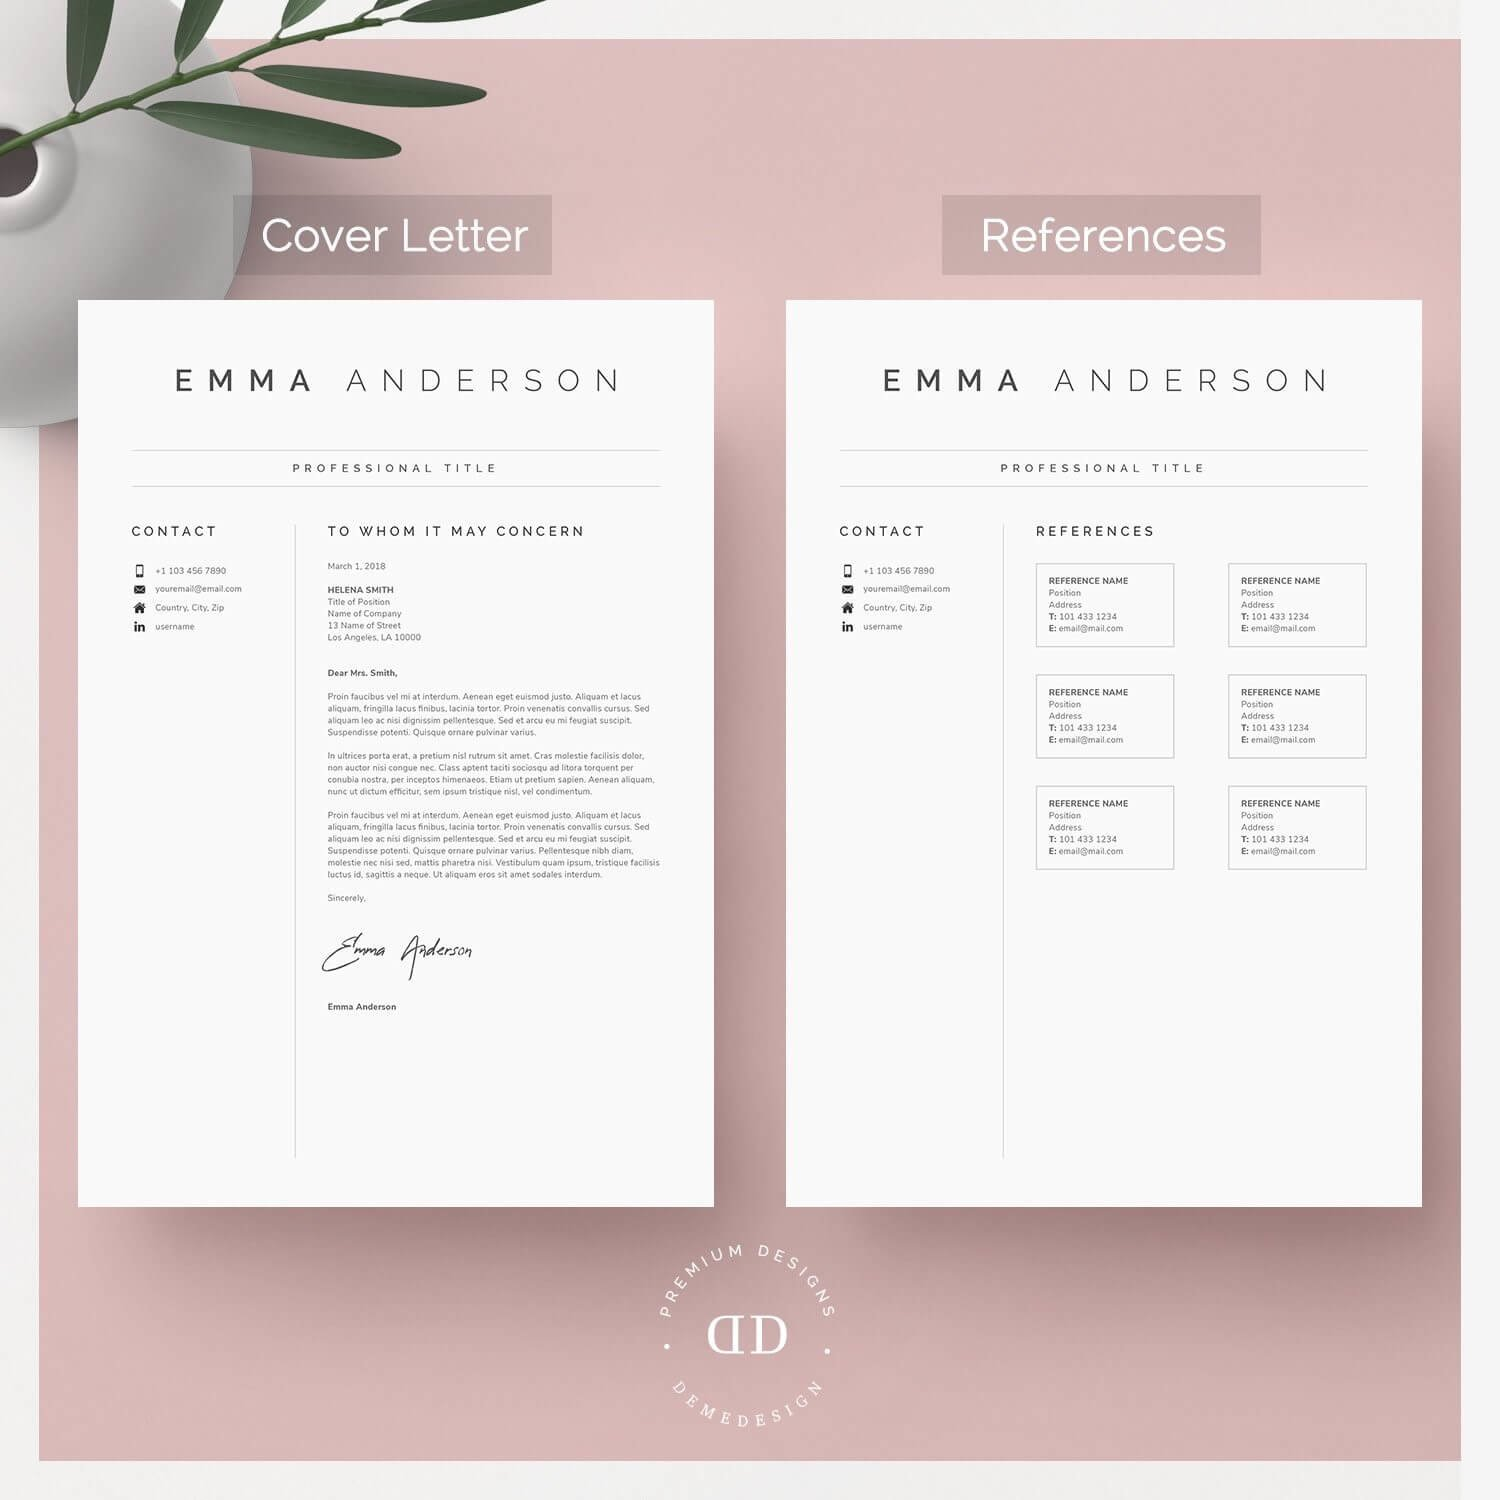 cover letter templates to edit including free resume and financial planning analysis Resume Free Resume And Cover Letter Templates